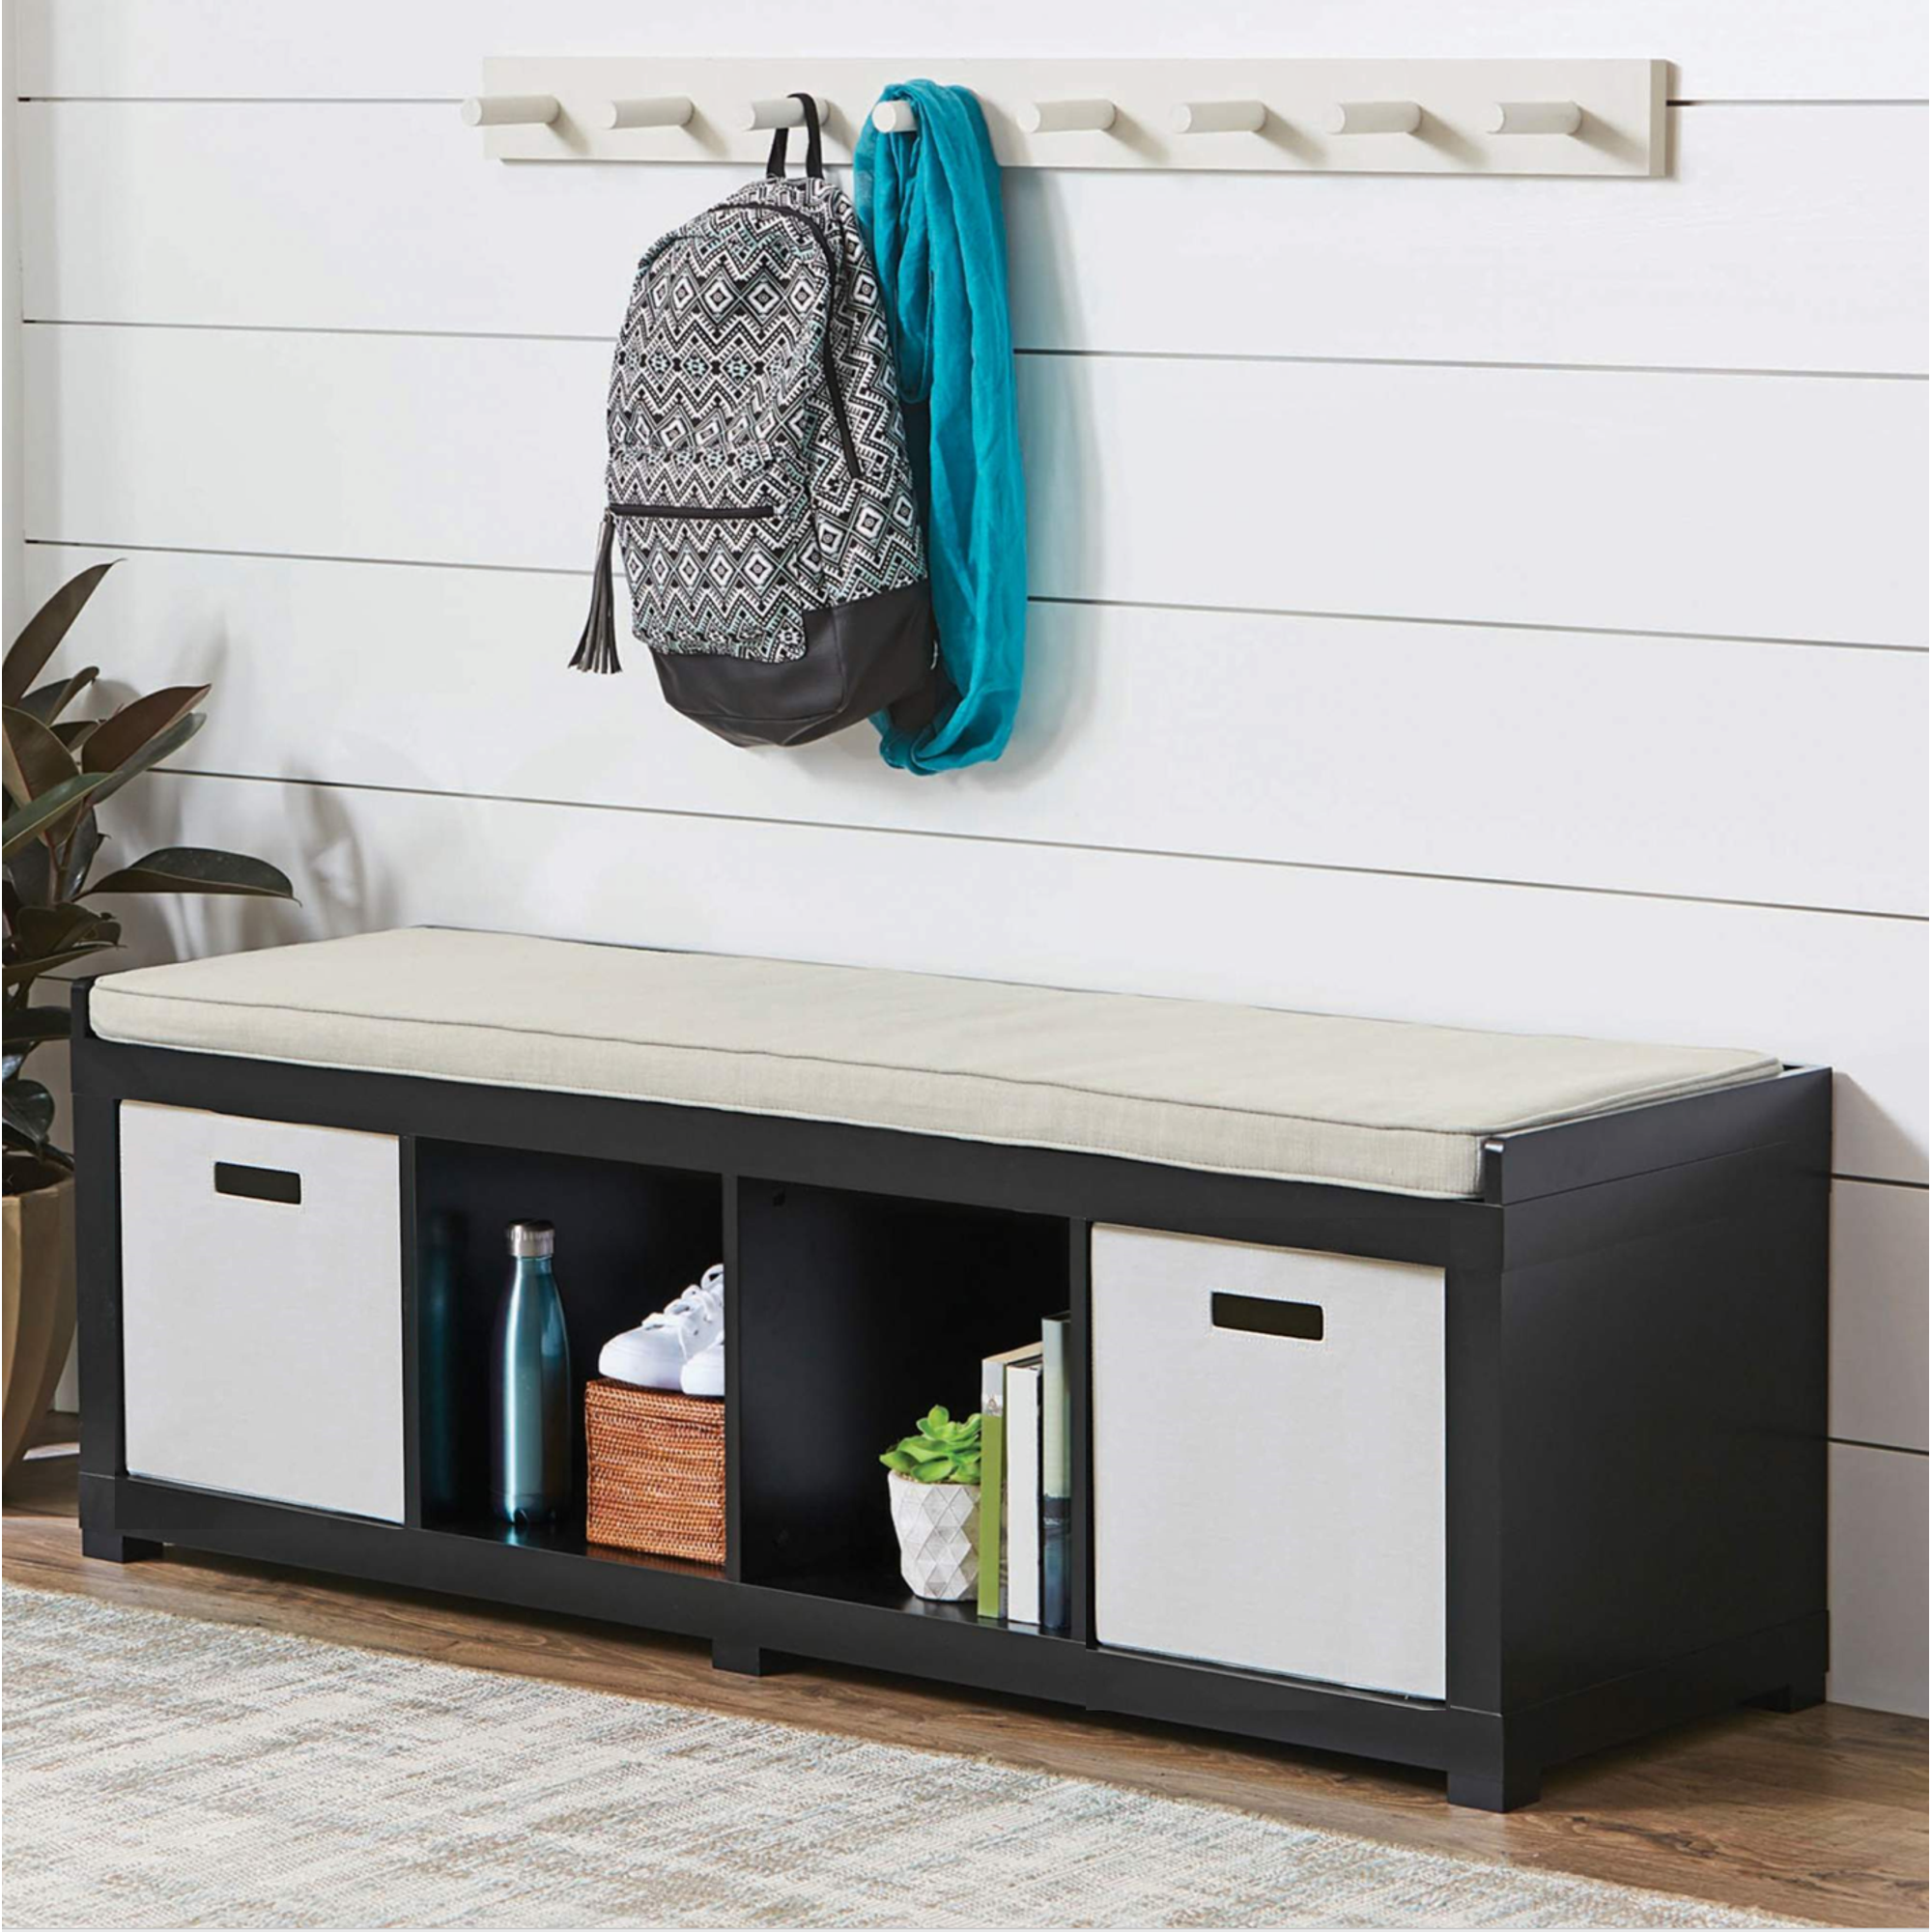 6315627166fcb6f96ba634e3136f5a9b - Better Homes And Gardens Diy Bench Seat With Storage